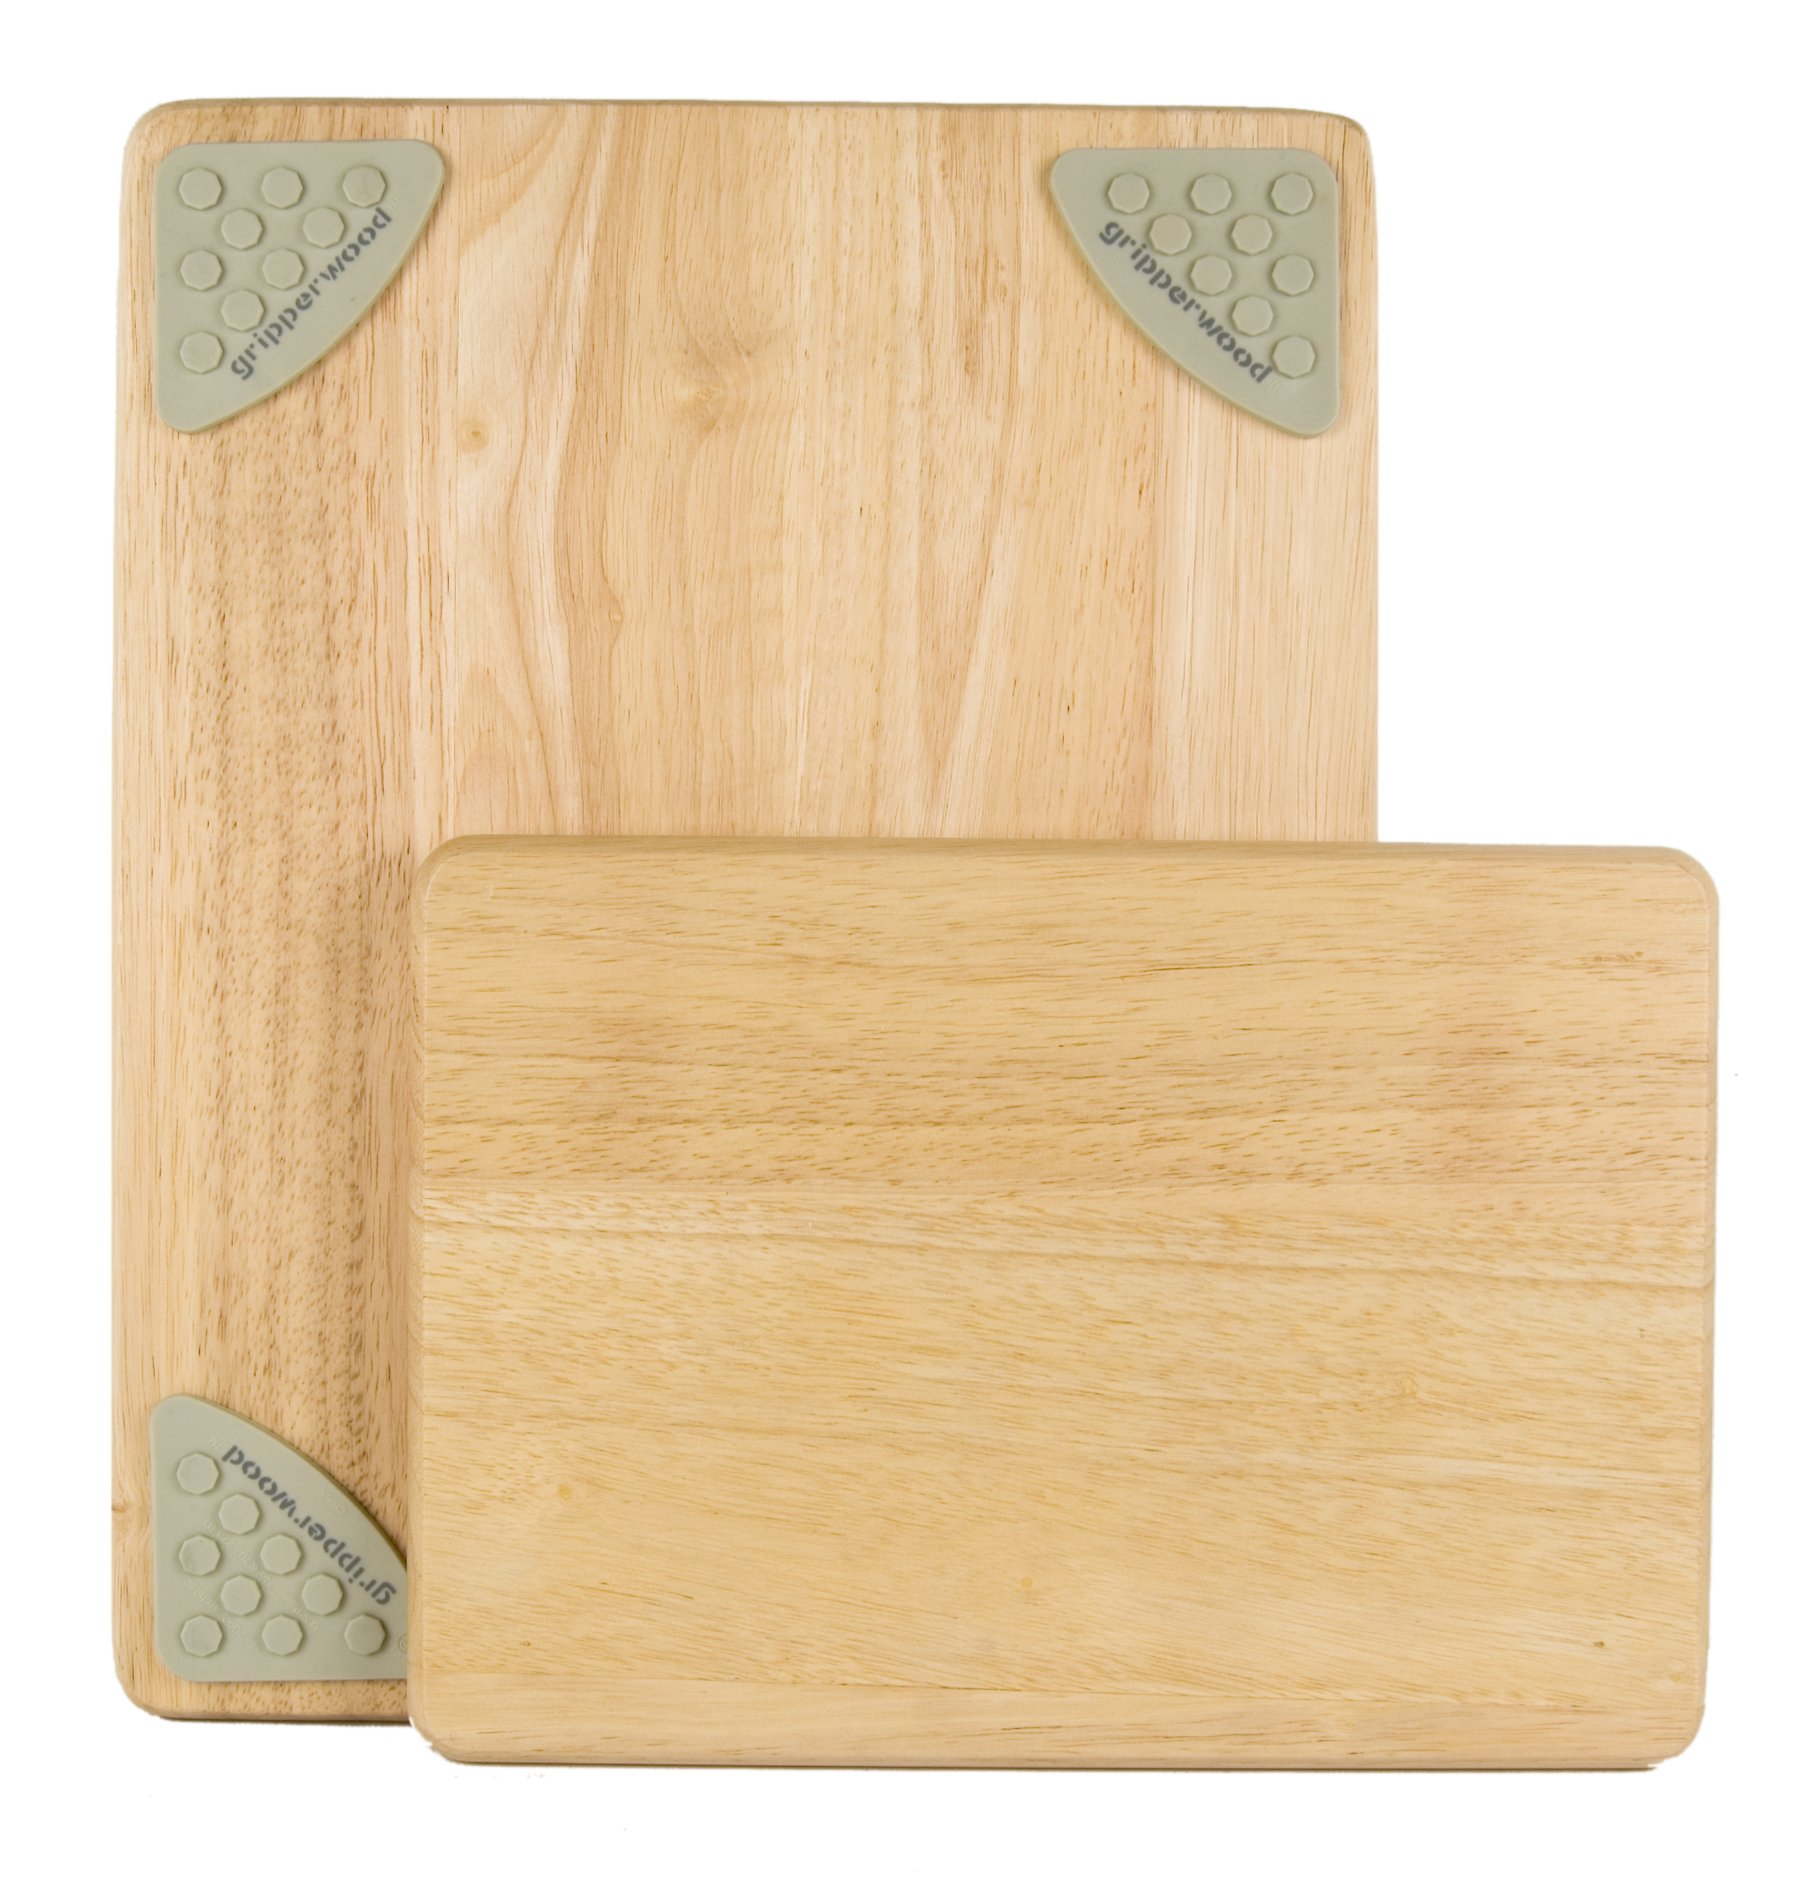 Architec Gripperwood Cutting Boards, Set of 2, Beechwood with Non-slip Gripper Feet, 11 by 8-Inches and 14 by 11-inches by Architec (Image #1)